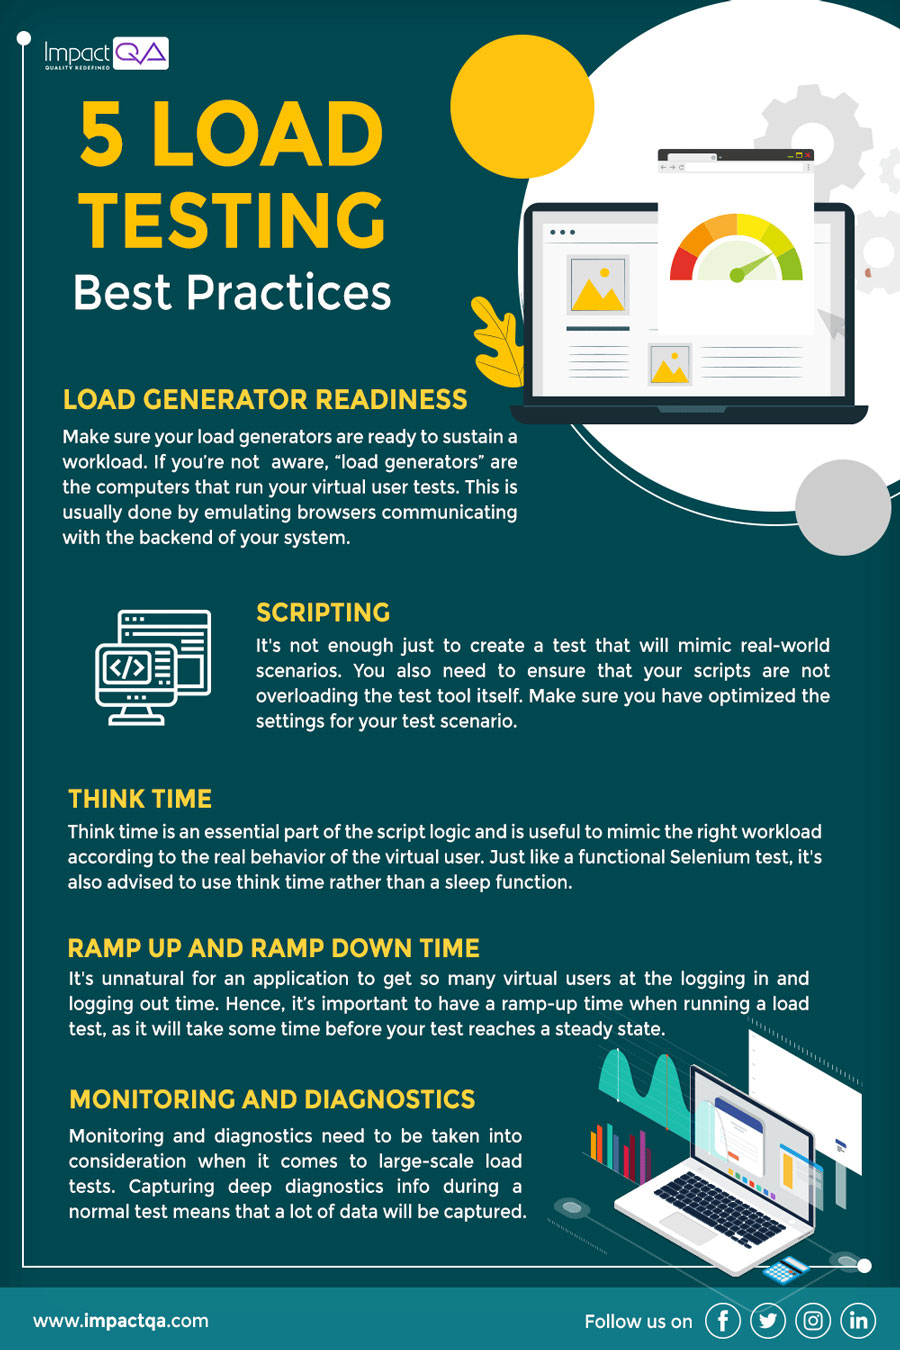 5 Load Testing Best Practices